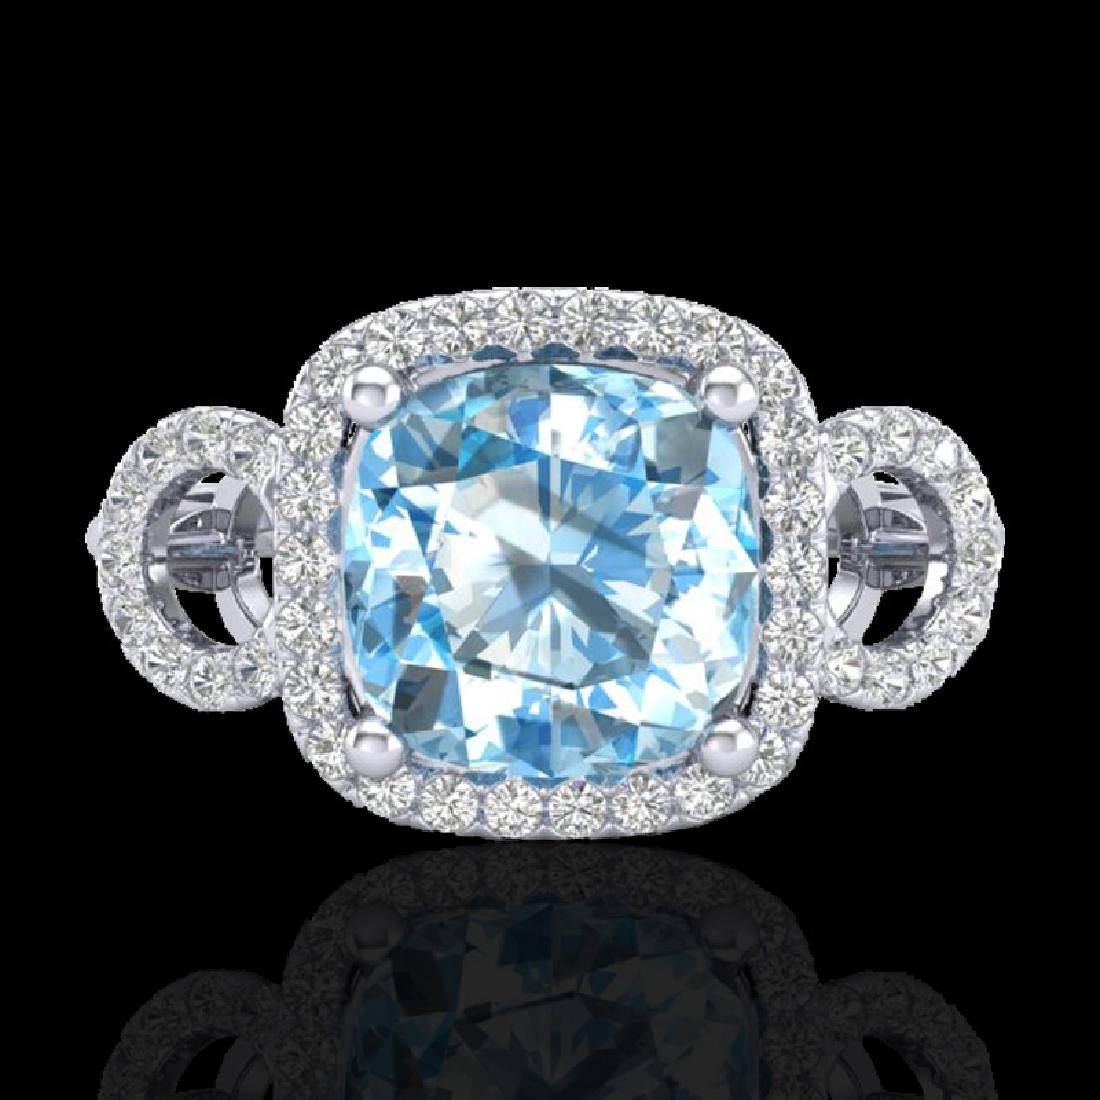 3.75 CTW Topaz & Micro VS/SI Diamond Ring 18K White